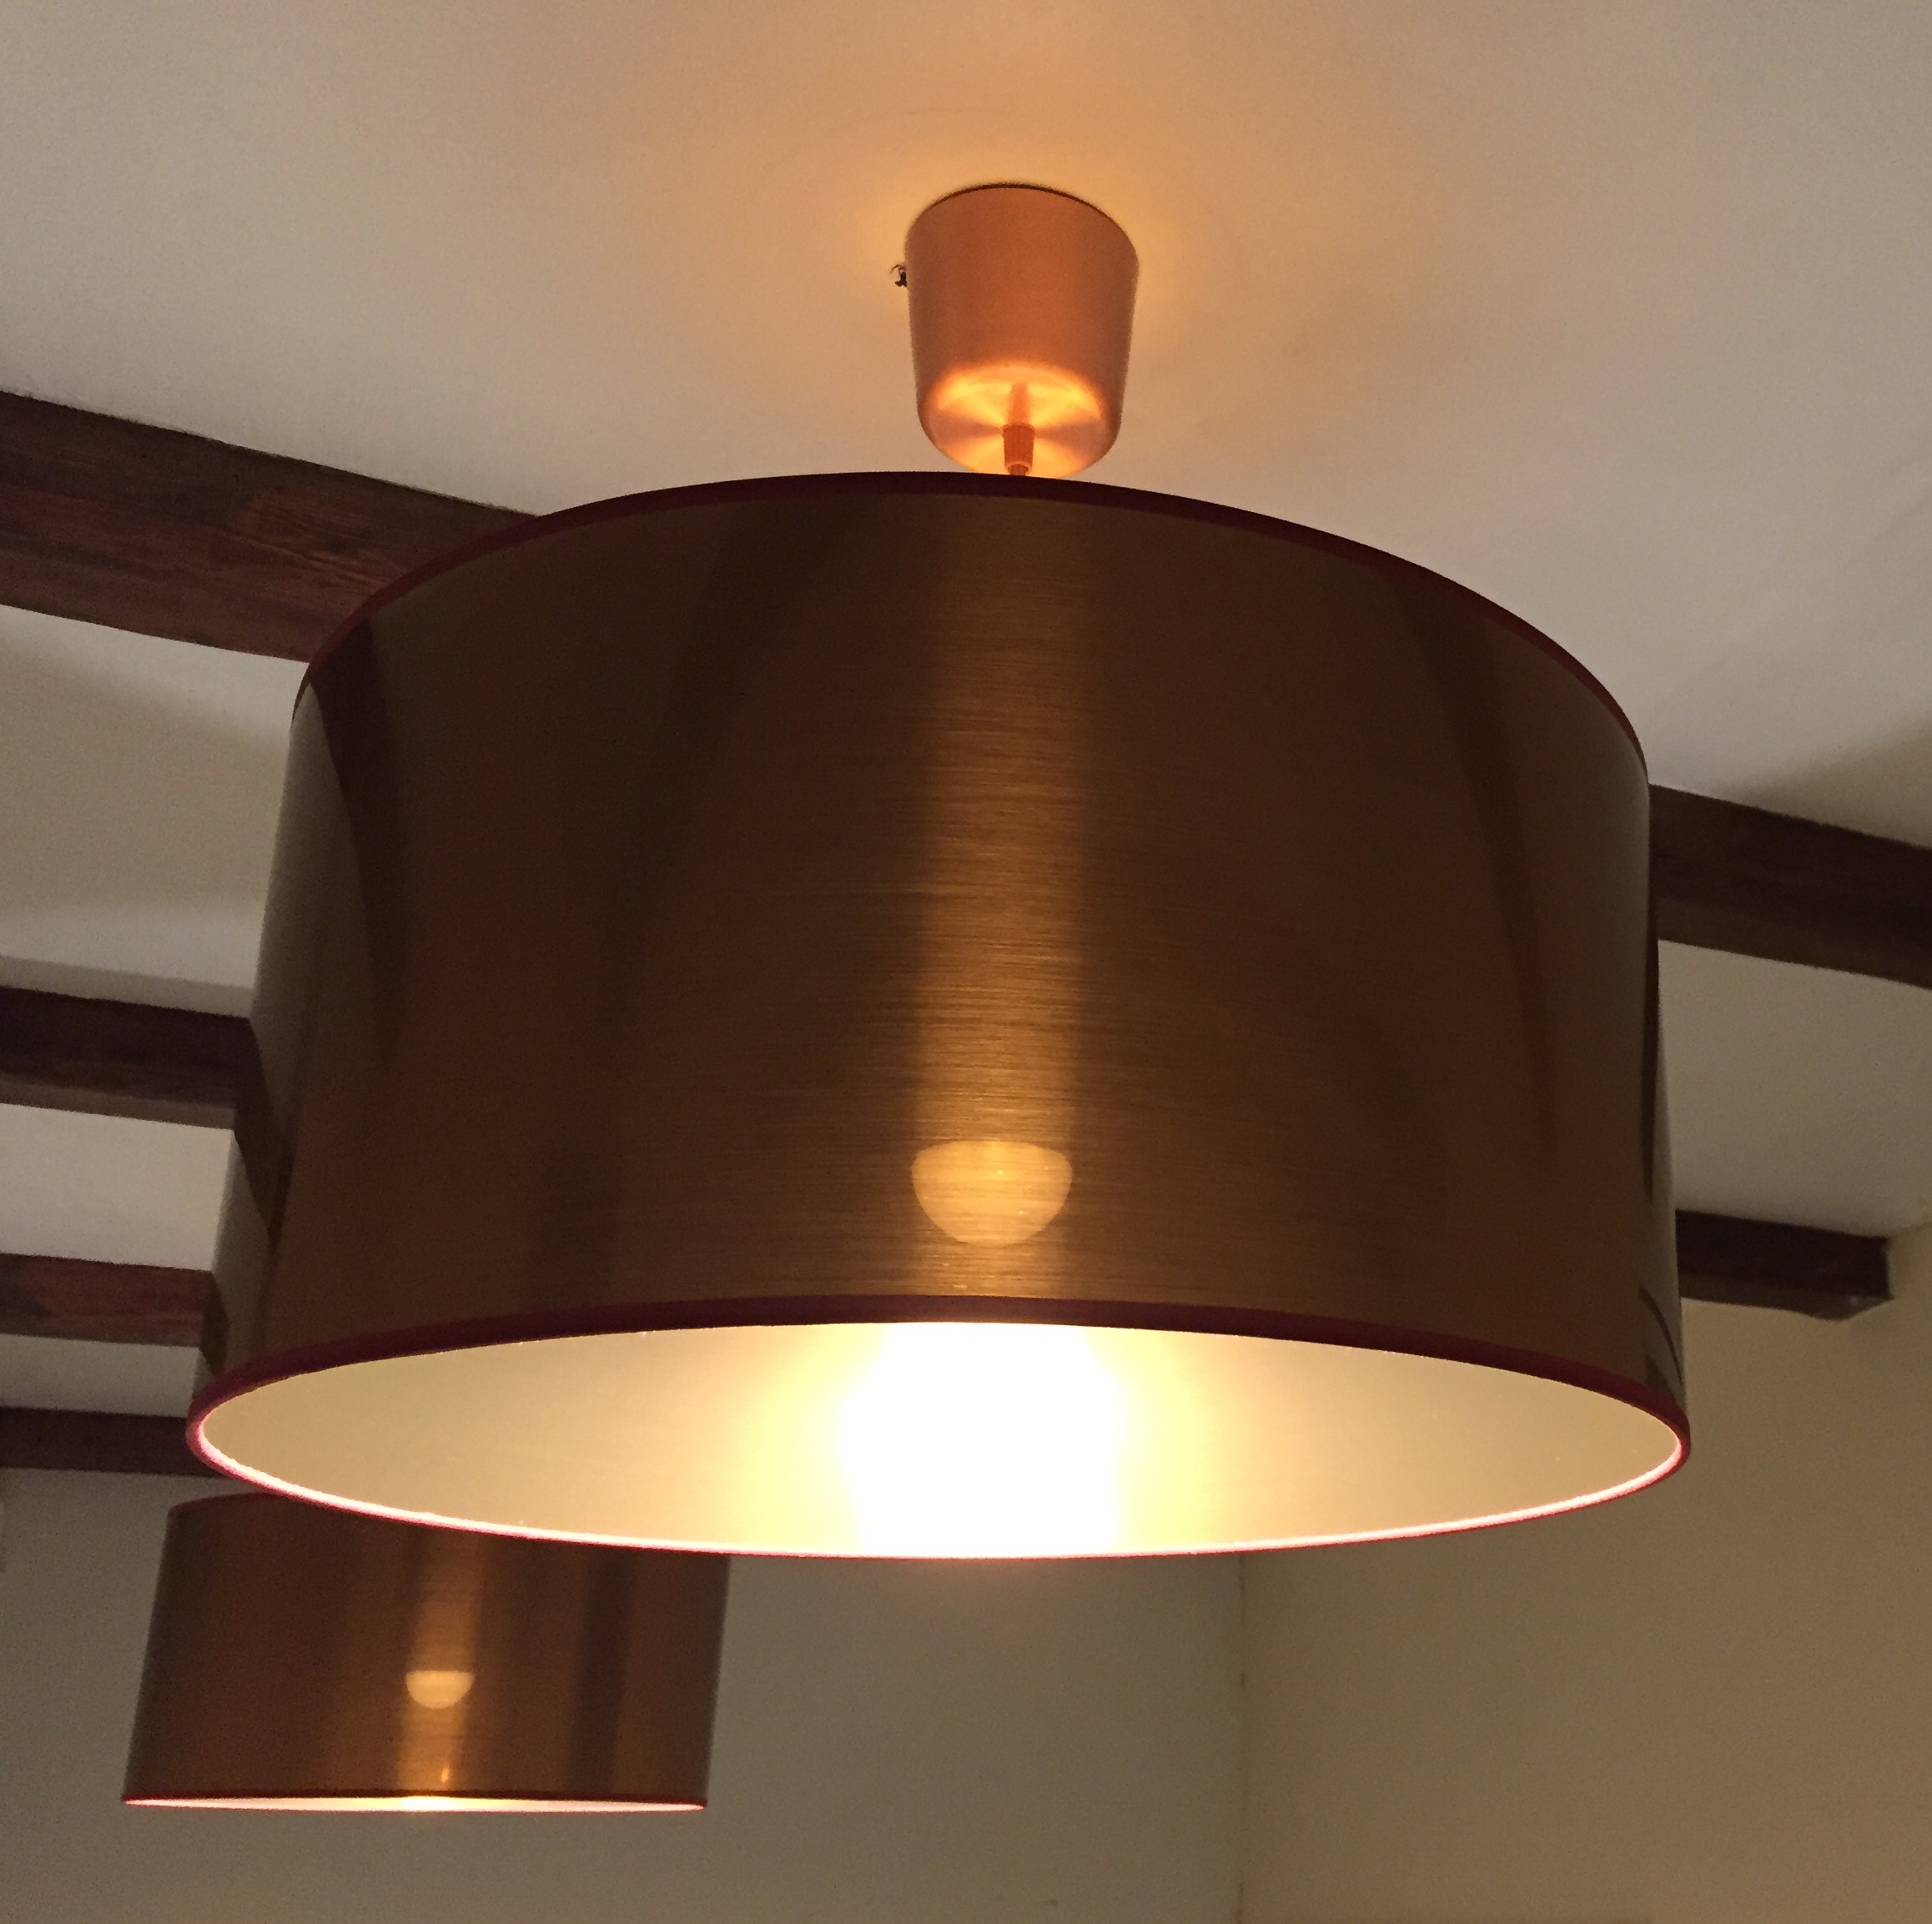 These copper drum shades bring an element of industrial chic to this room.  Specified and installed by the electrical contractor when the client wanted something more than the high street could offer and paired with an energy efficient LED light source to provide upward illumination onto the beamed ceiling feature.